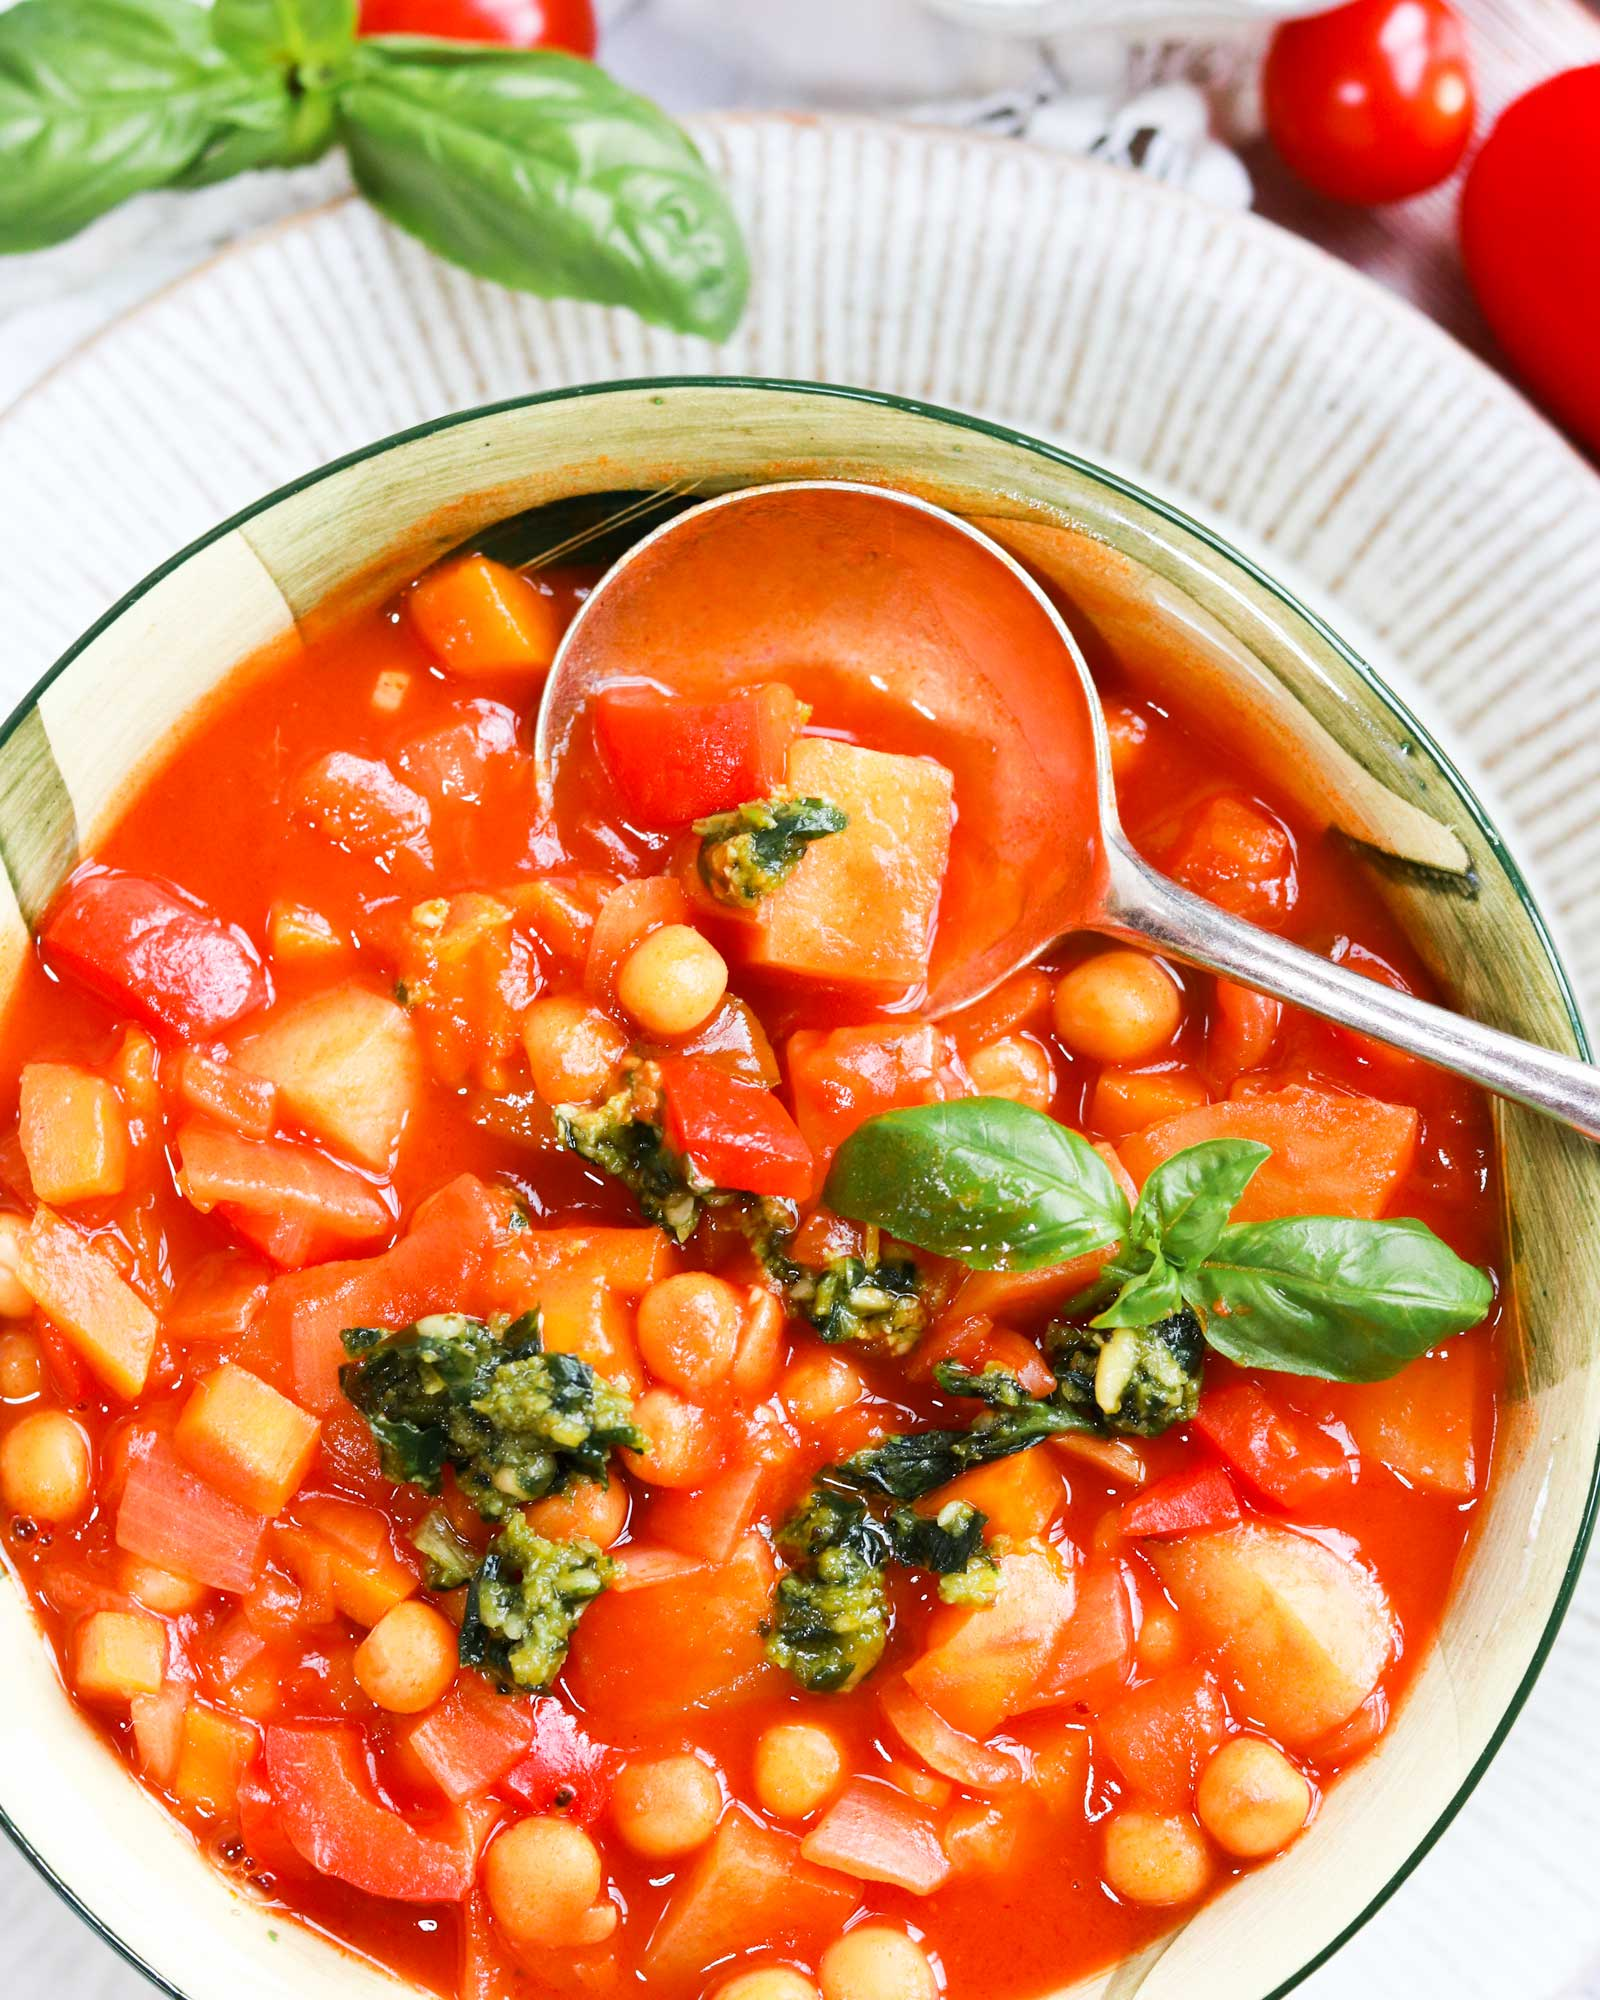 Chickpea and Pepper stew with pesto in a bowl